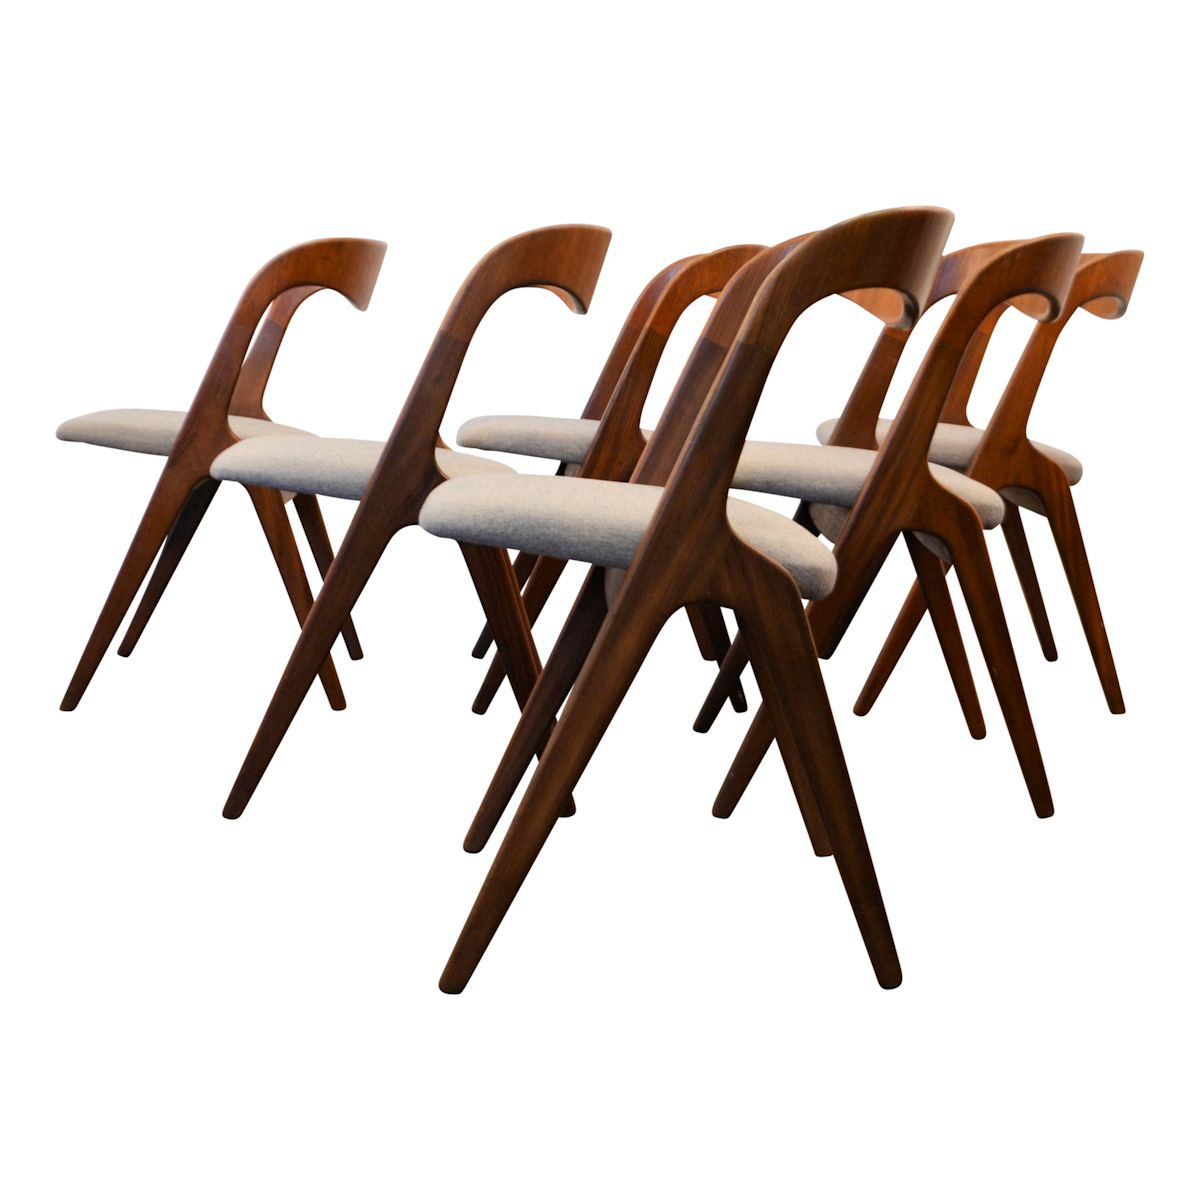 Danish Modern Erik Wørts Dining Chairs - side